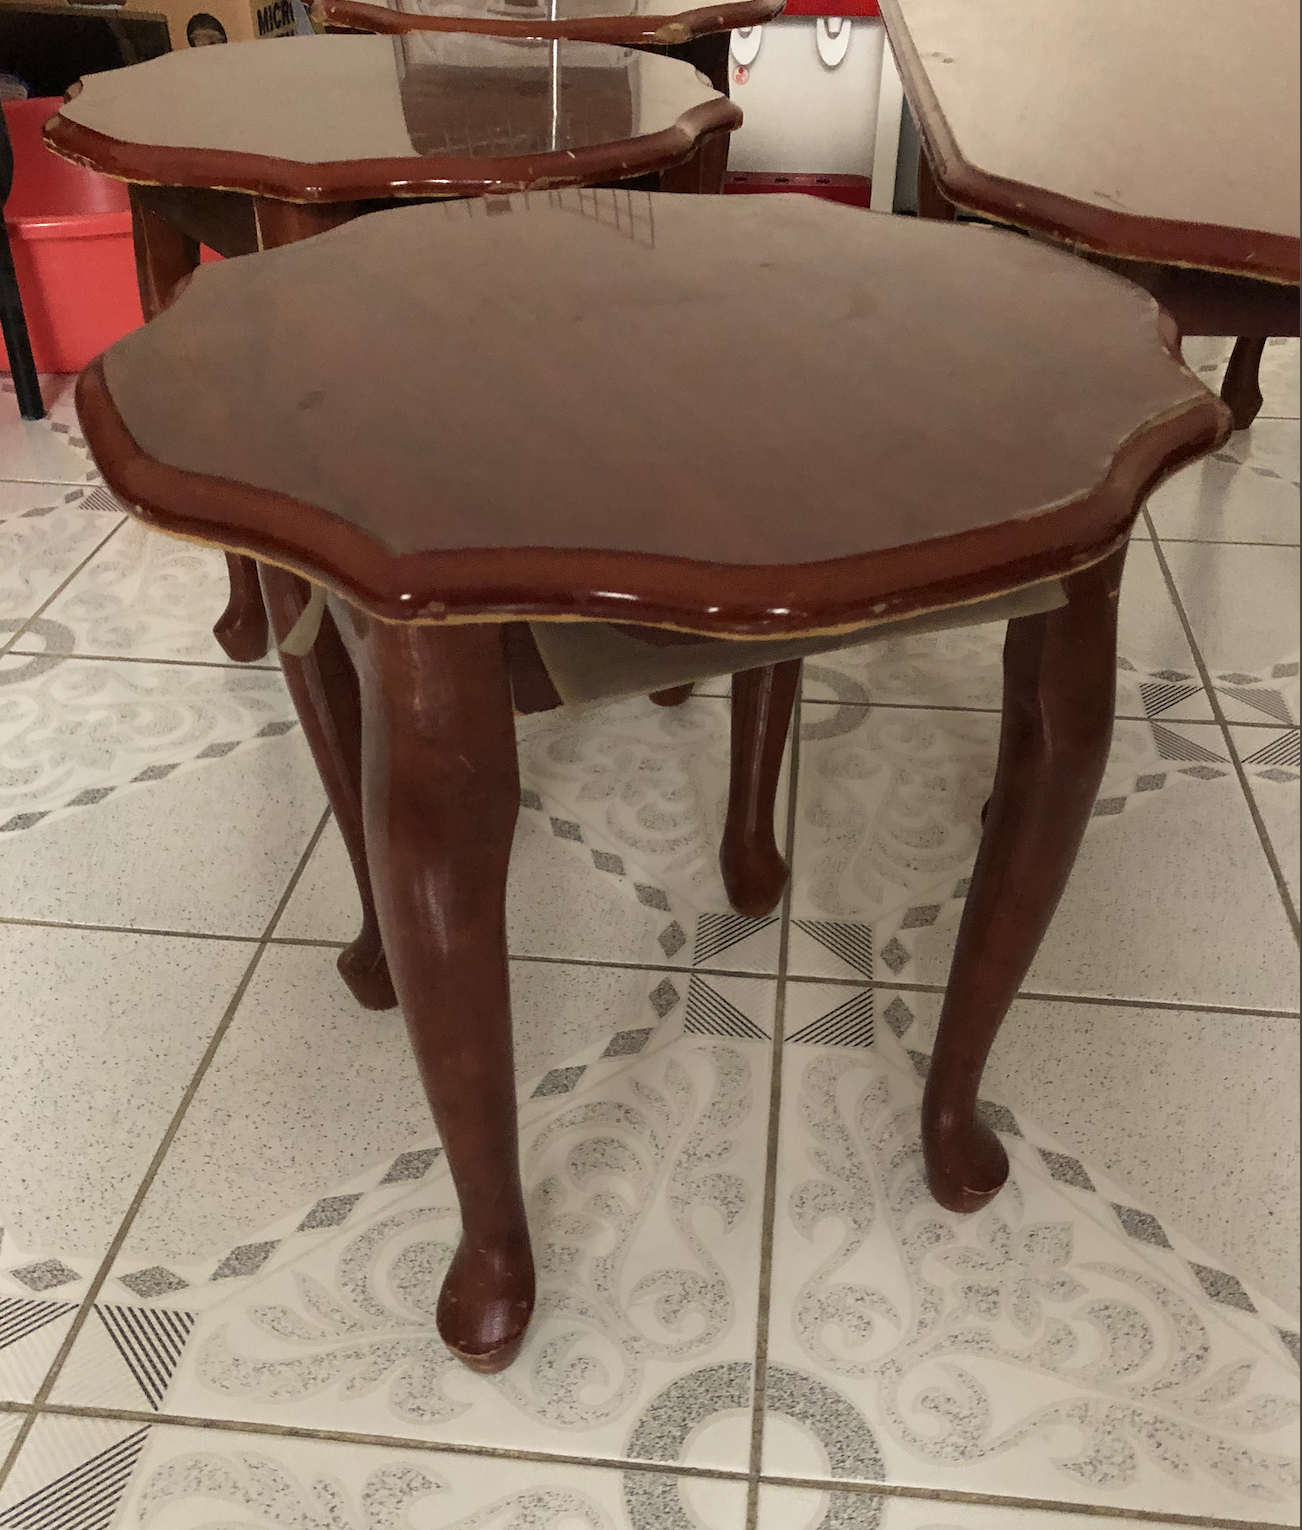 Table set - 1 large coffee table and 3 small table